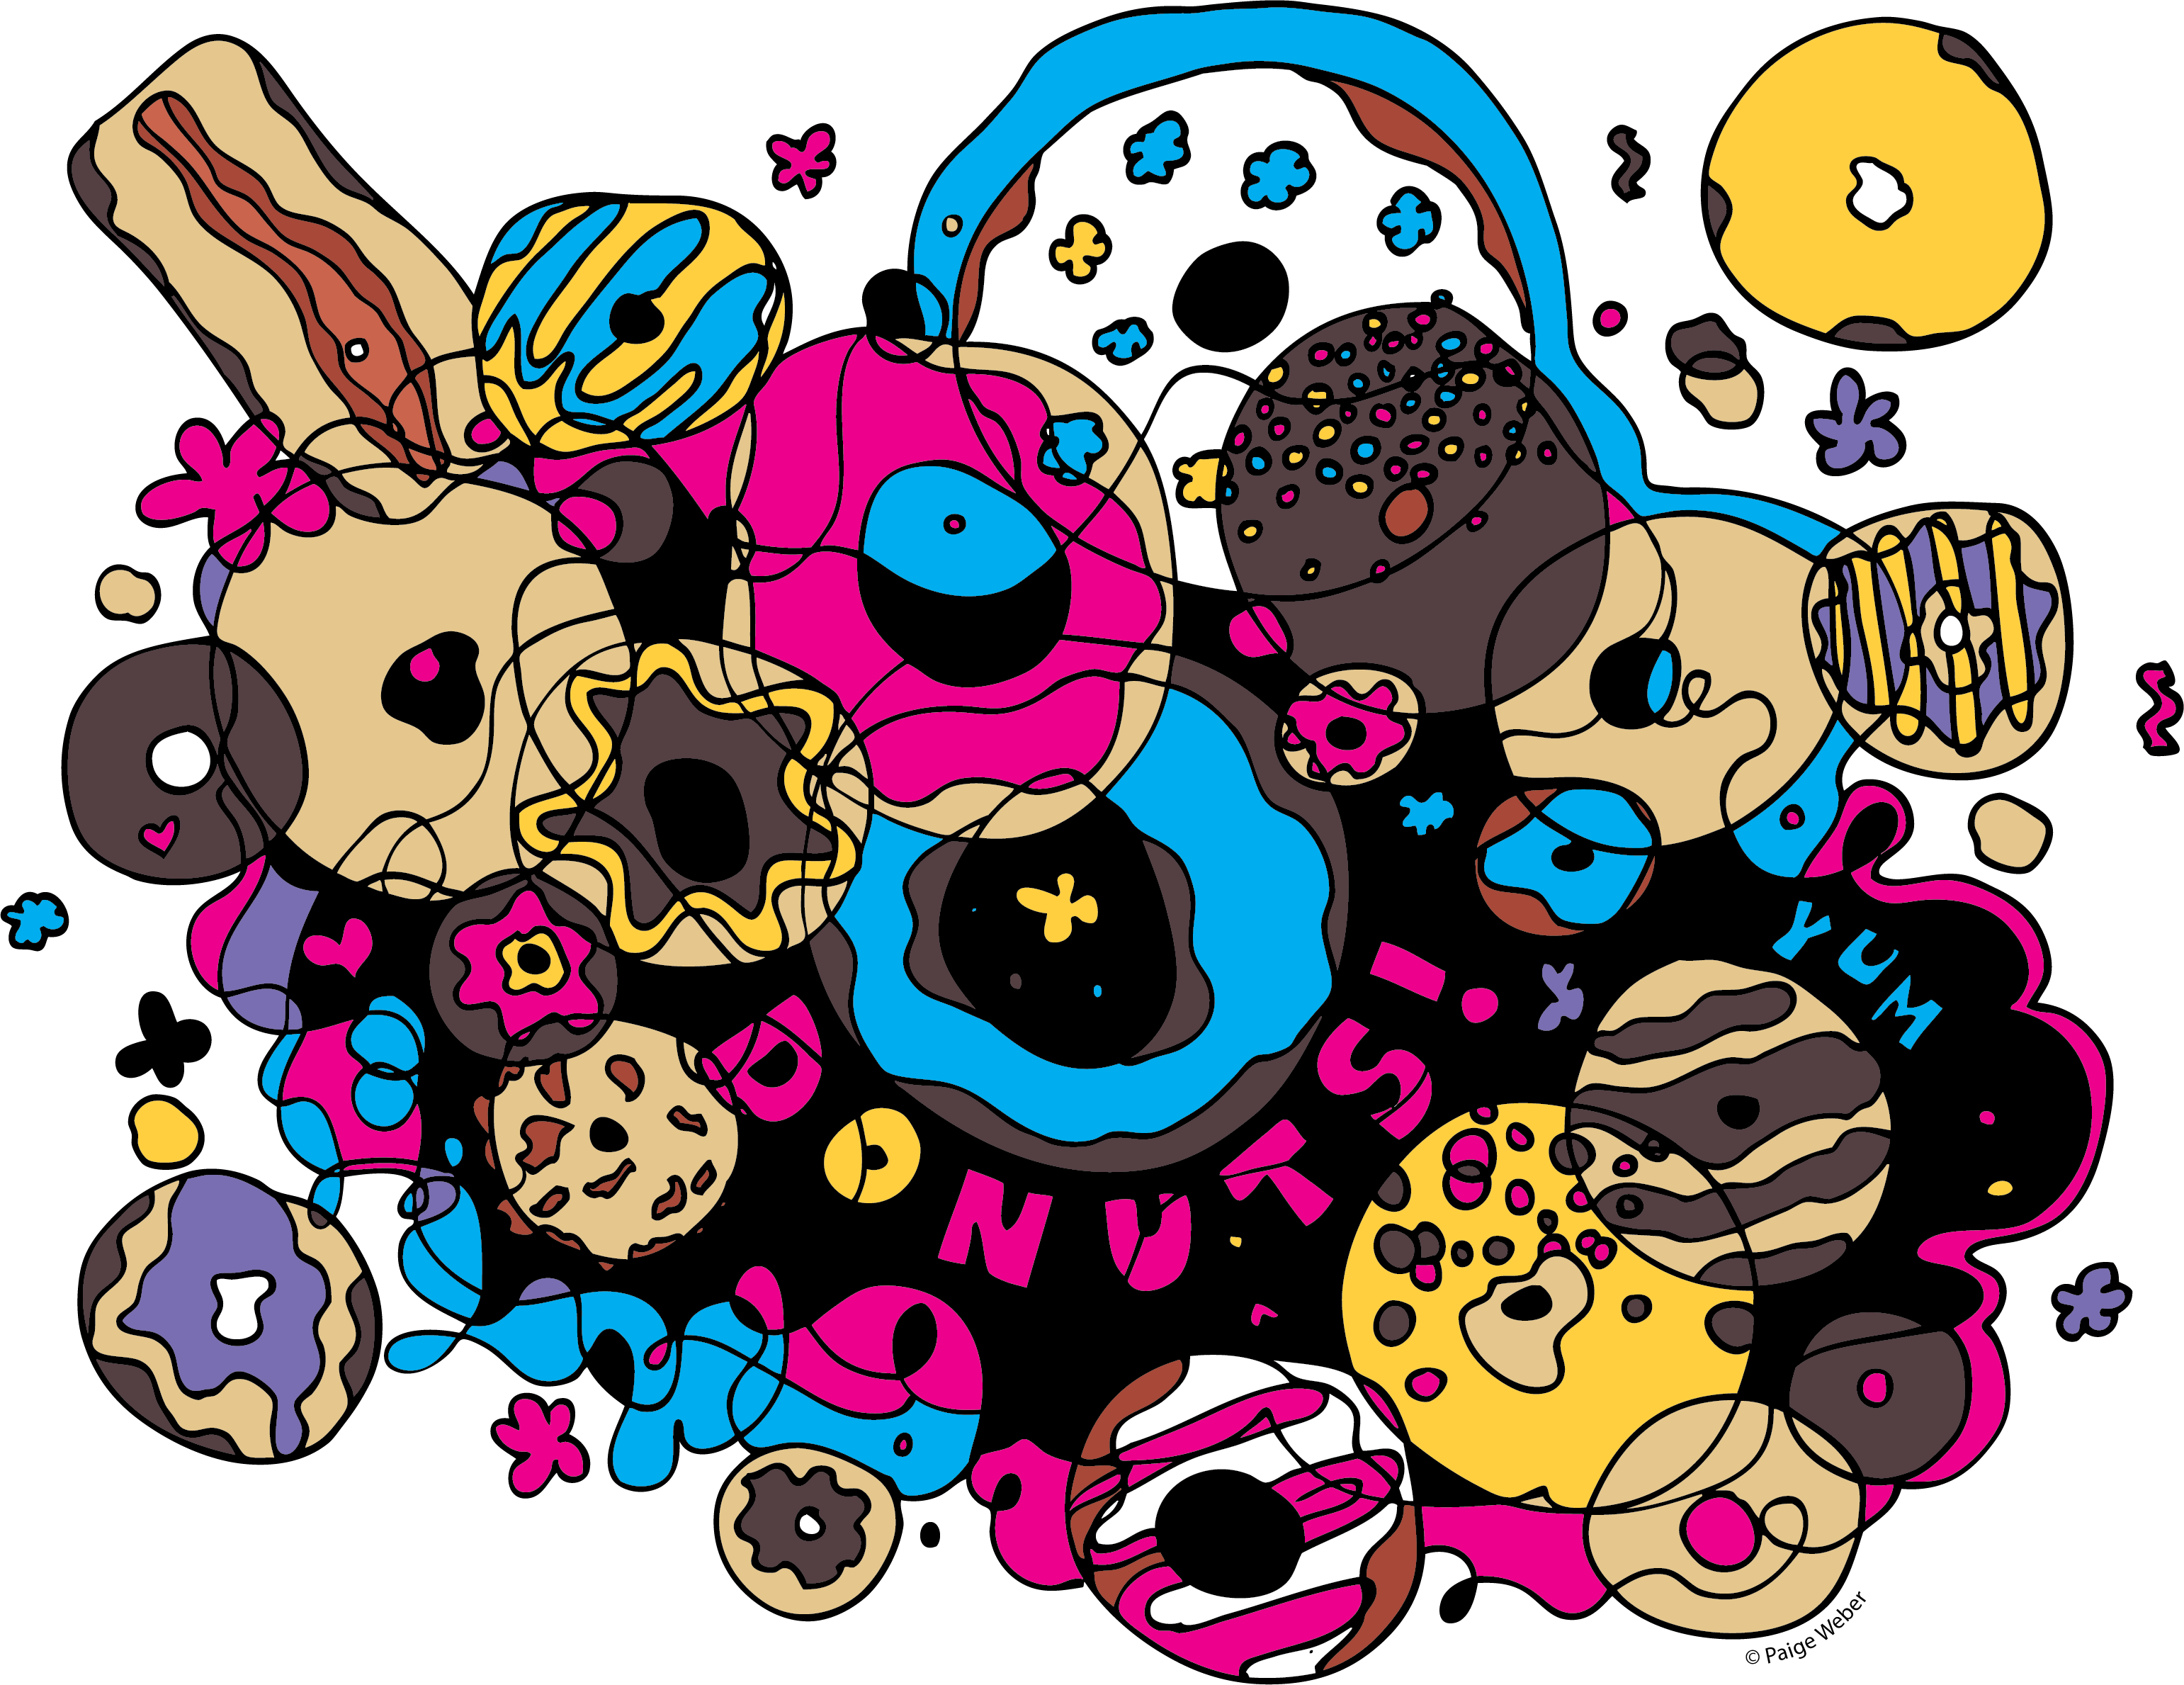 Digital doodle skillshare projects. Donuts clipart doodles